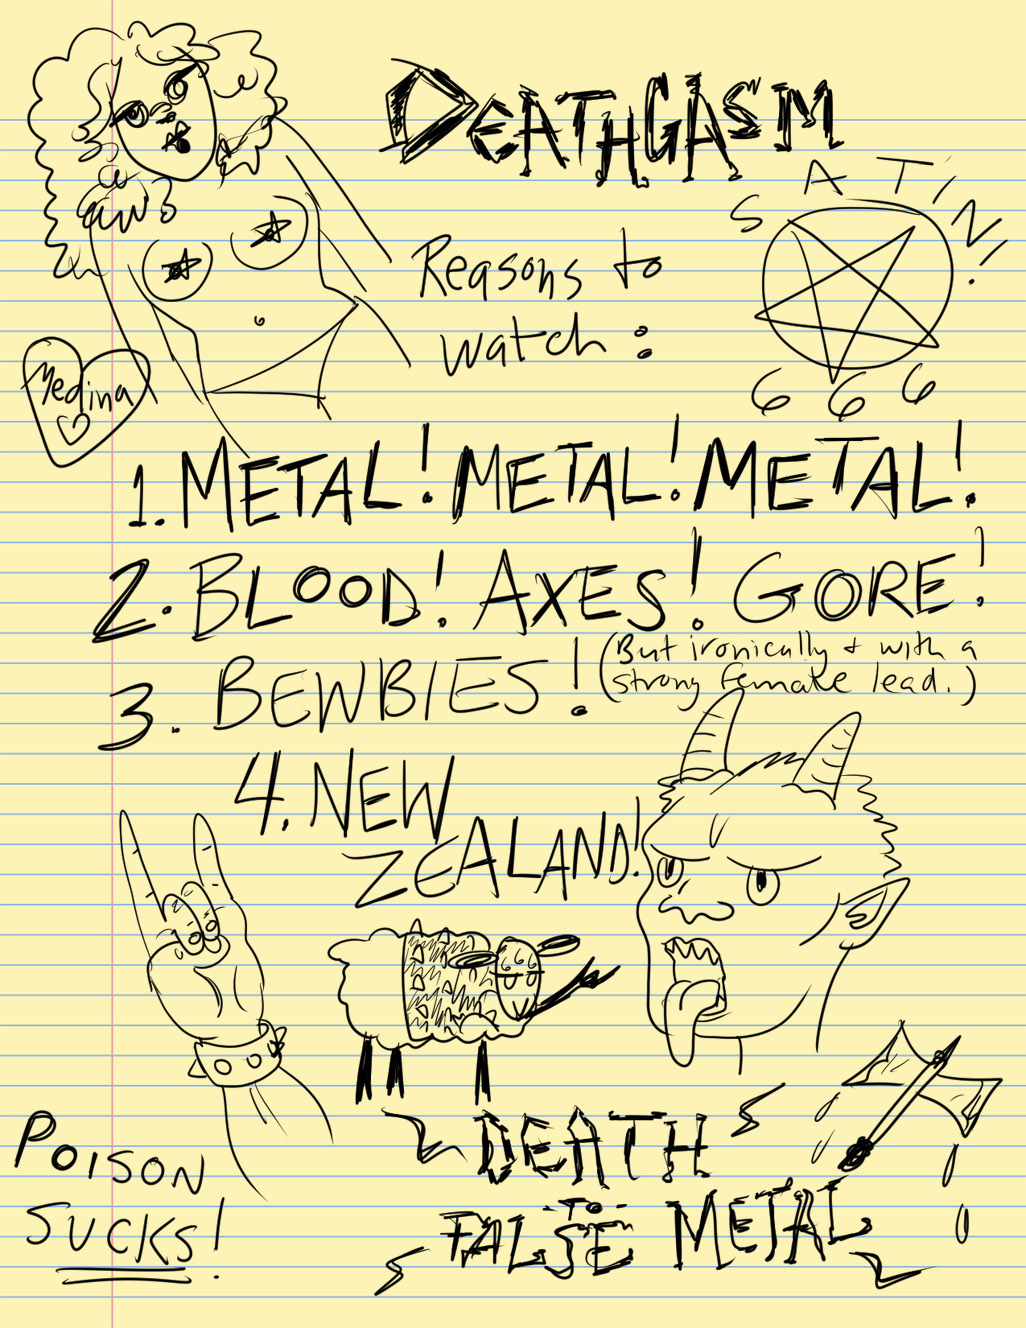 Death to False Metal!